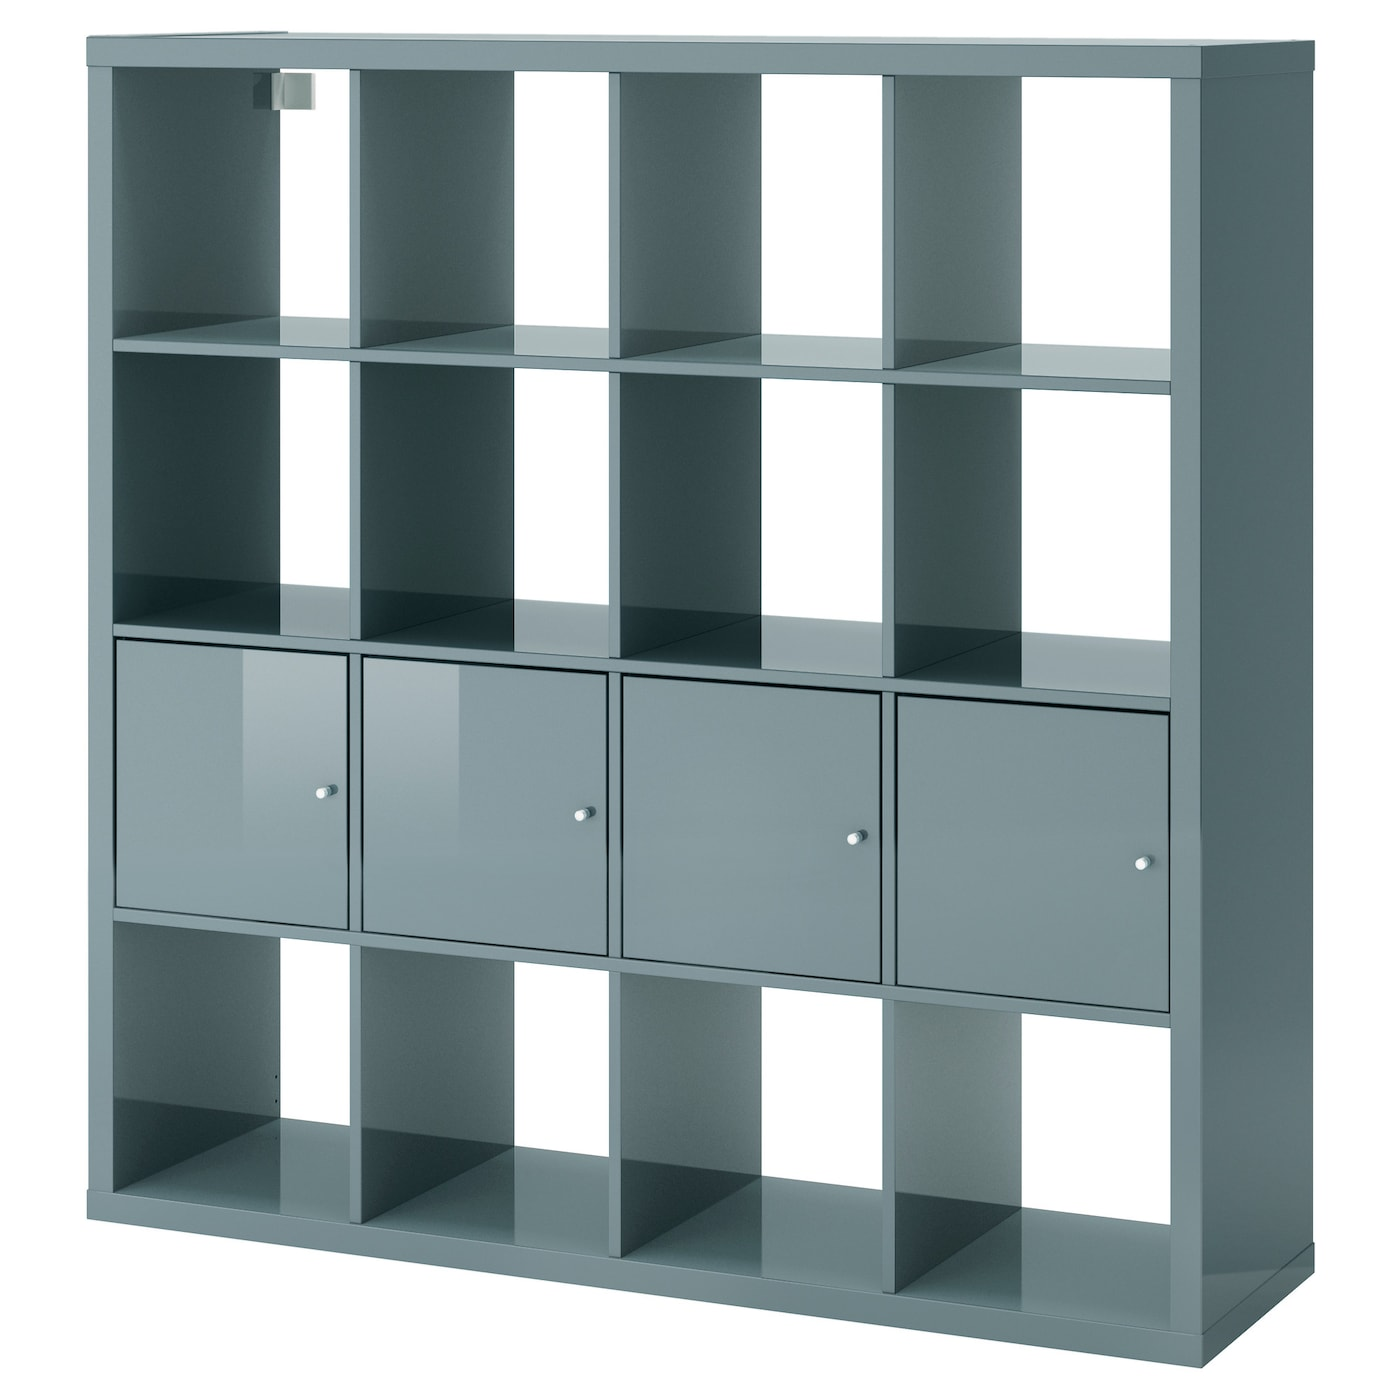 Kallax shelving unit with 4 inserts high gloss grey turquoise 147x147 cm ikea - Etagere modulable ikea ...